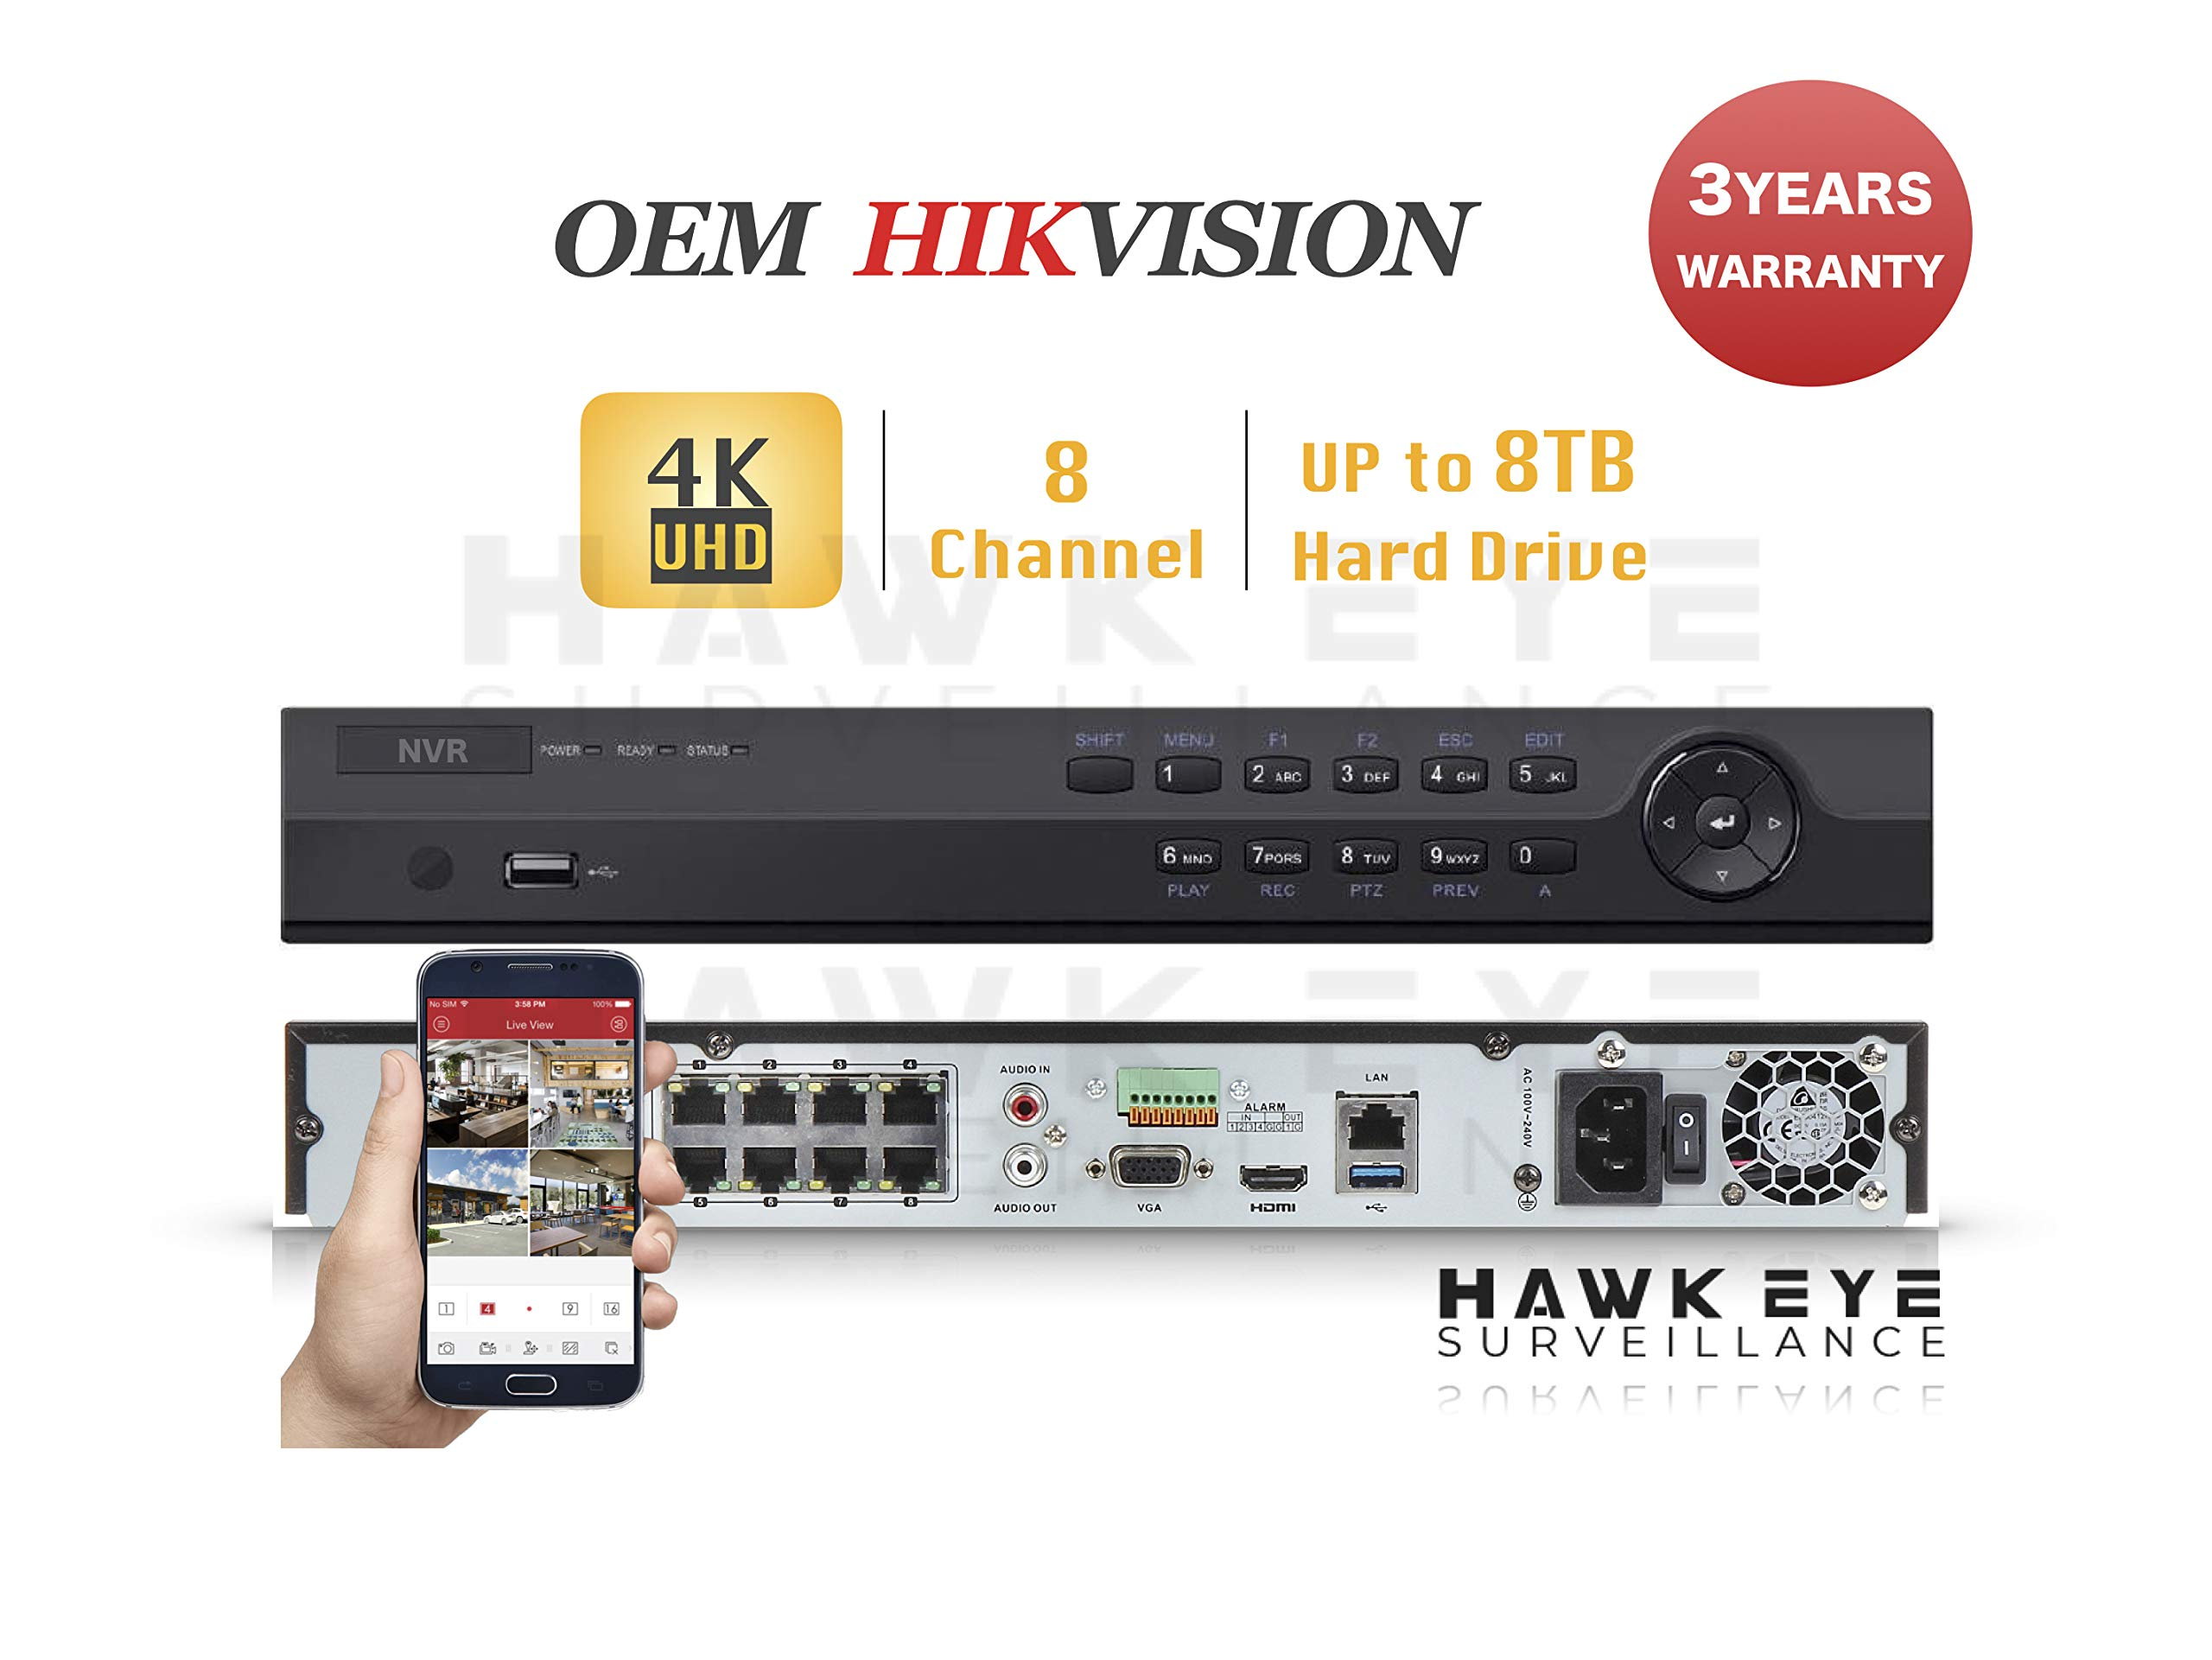 4K 8CH IP Network Video Recorder - 8 Built in PoE Port Up to 12MP Resolution Recording Compatible as DS-7608NI-K2/8P NVR 3 Year Warranty